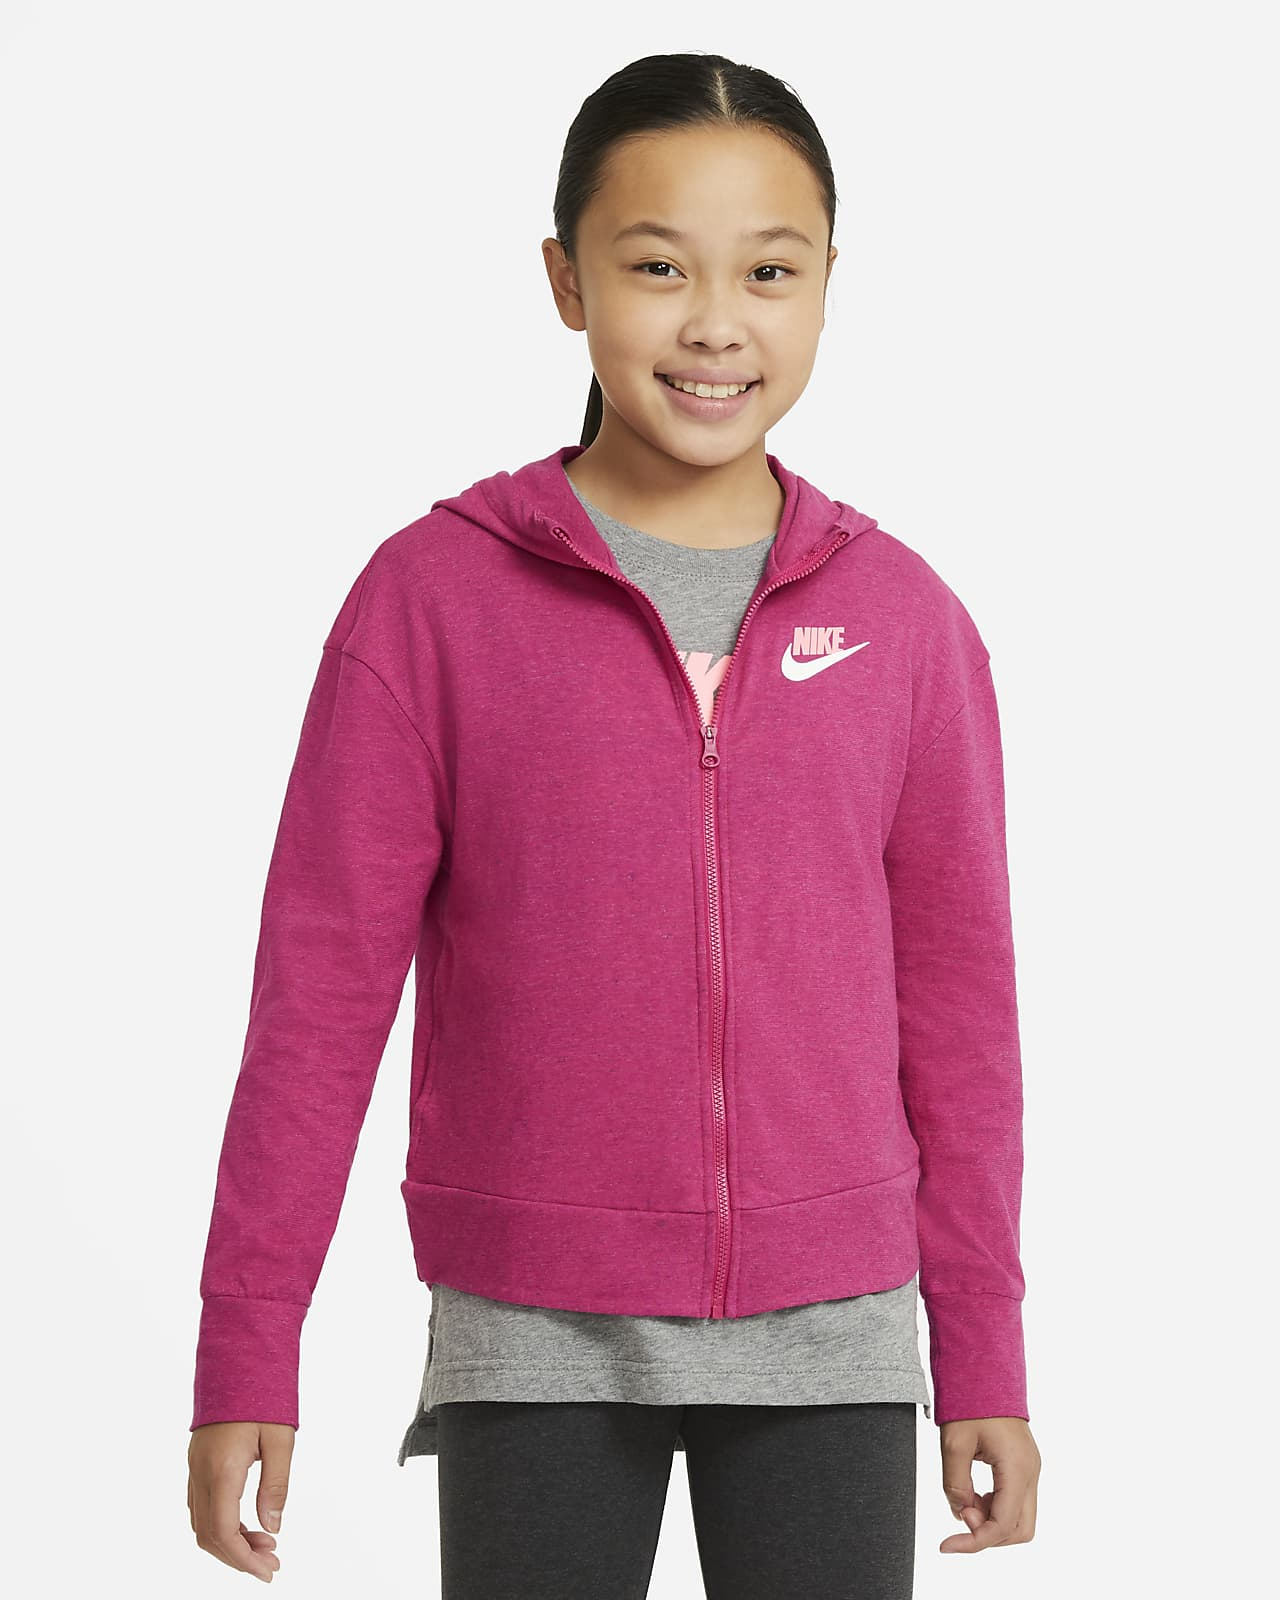 Nike Sportswear Big Kids' (Girls') Full-Zip Jersey Hoodie